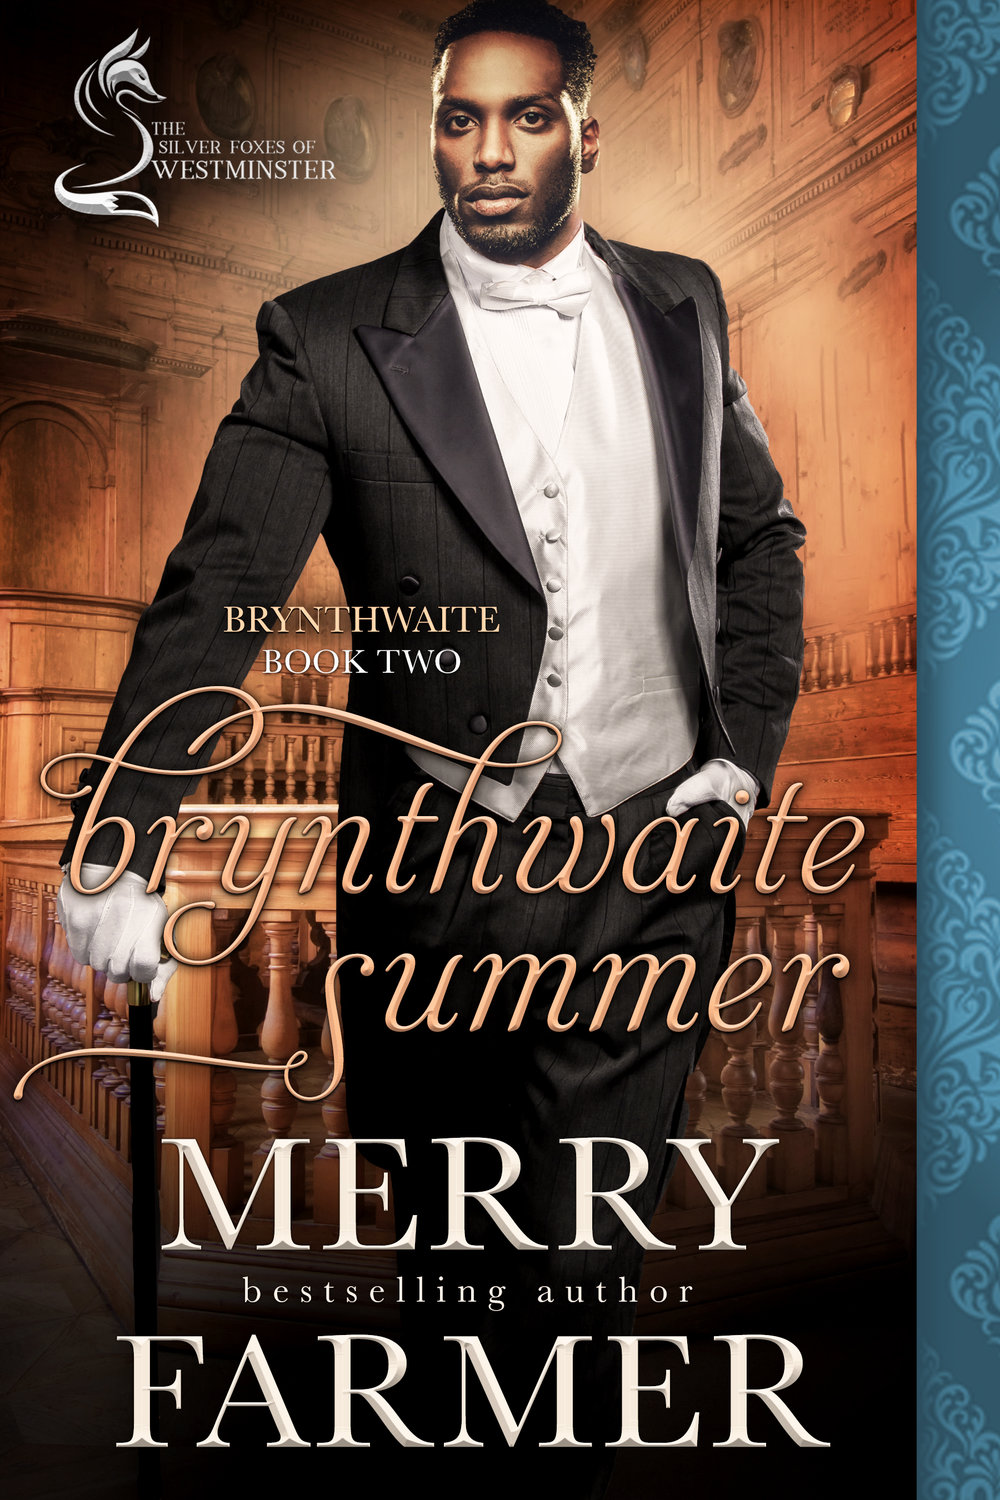 Brynthwaite Summer (Brynthwaite Book Two) - Coming soon!